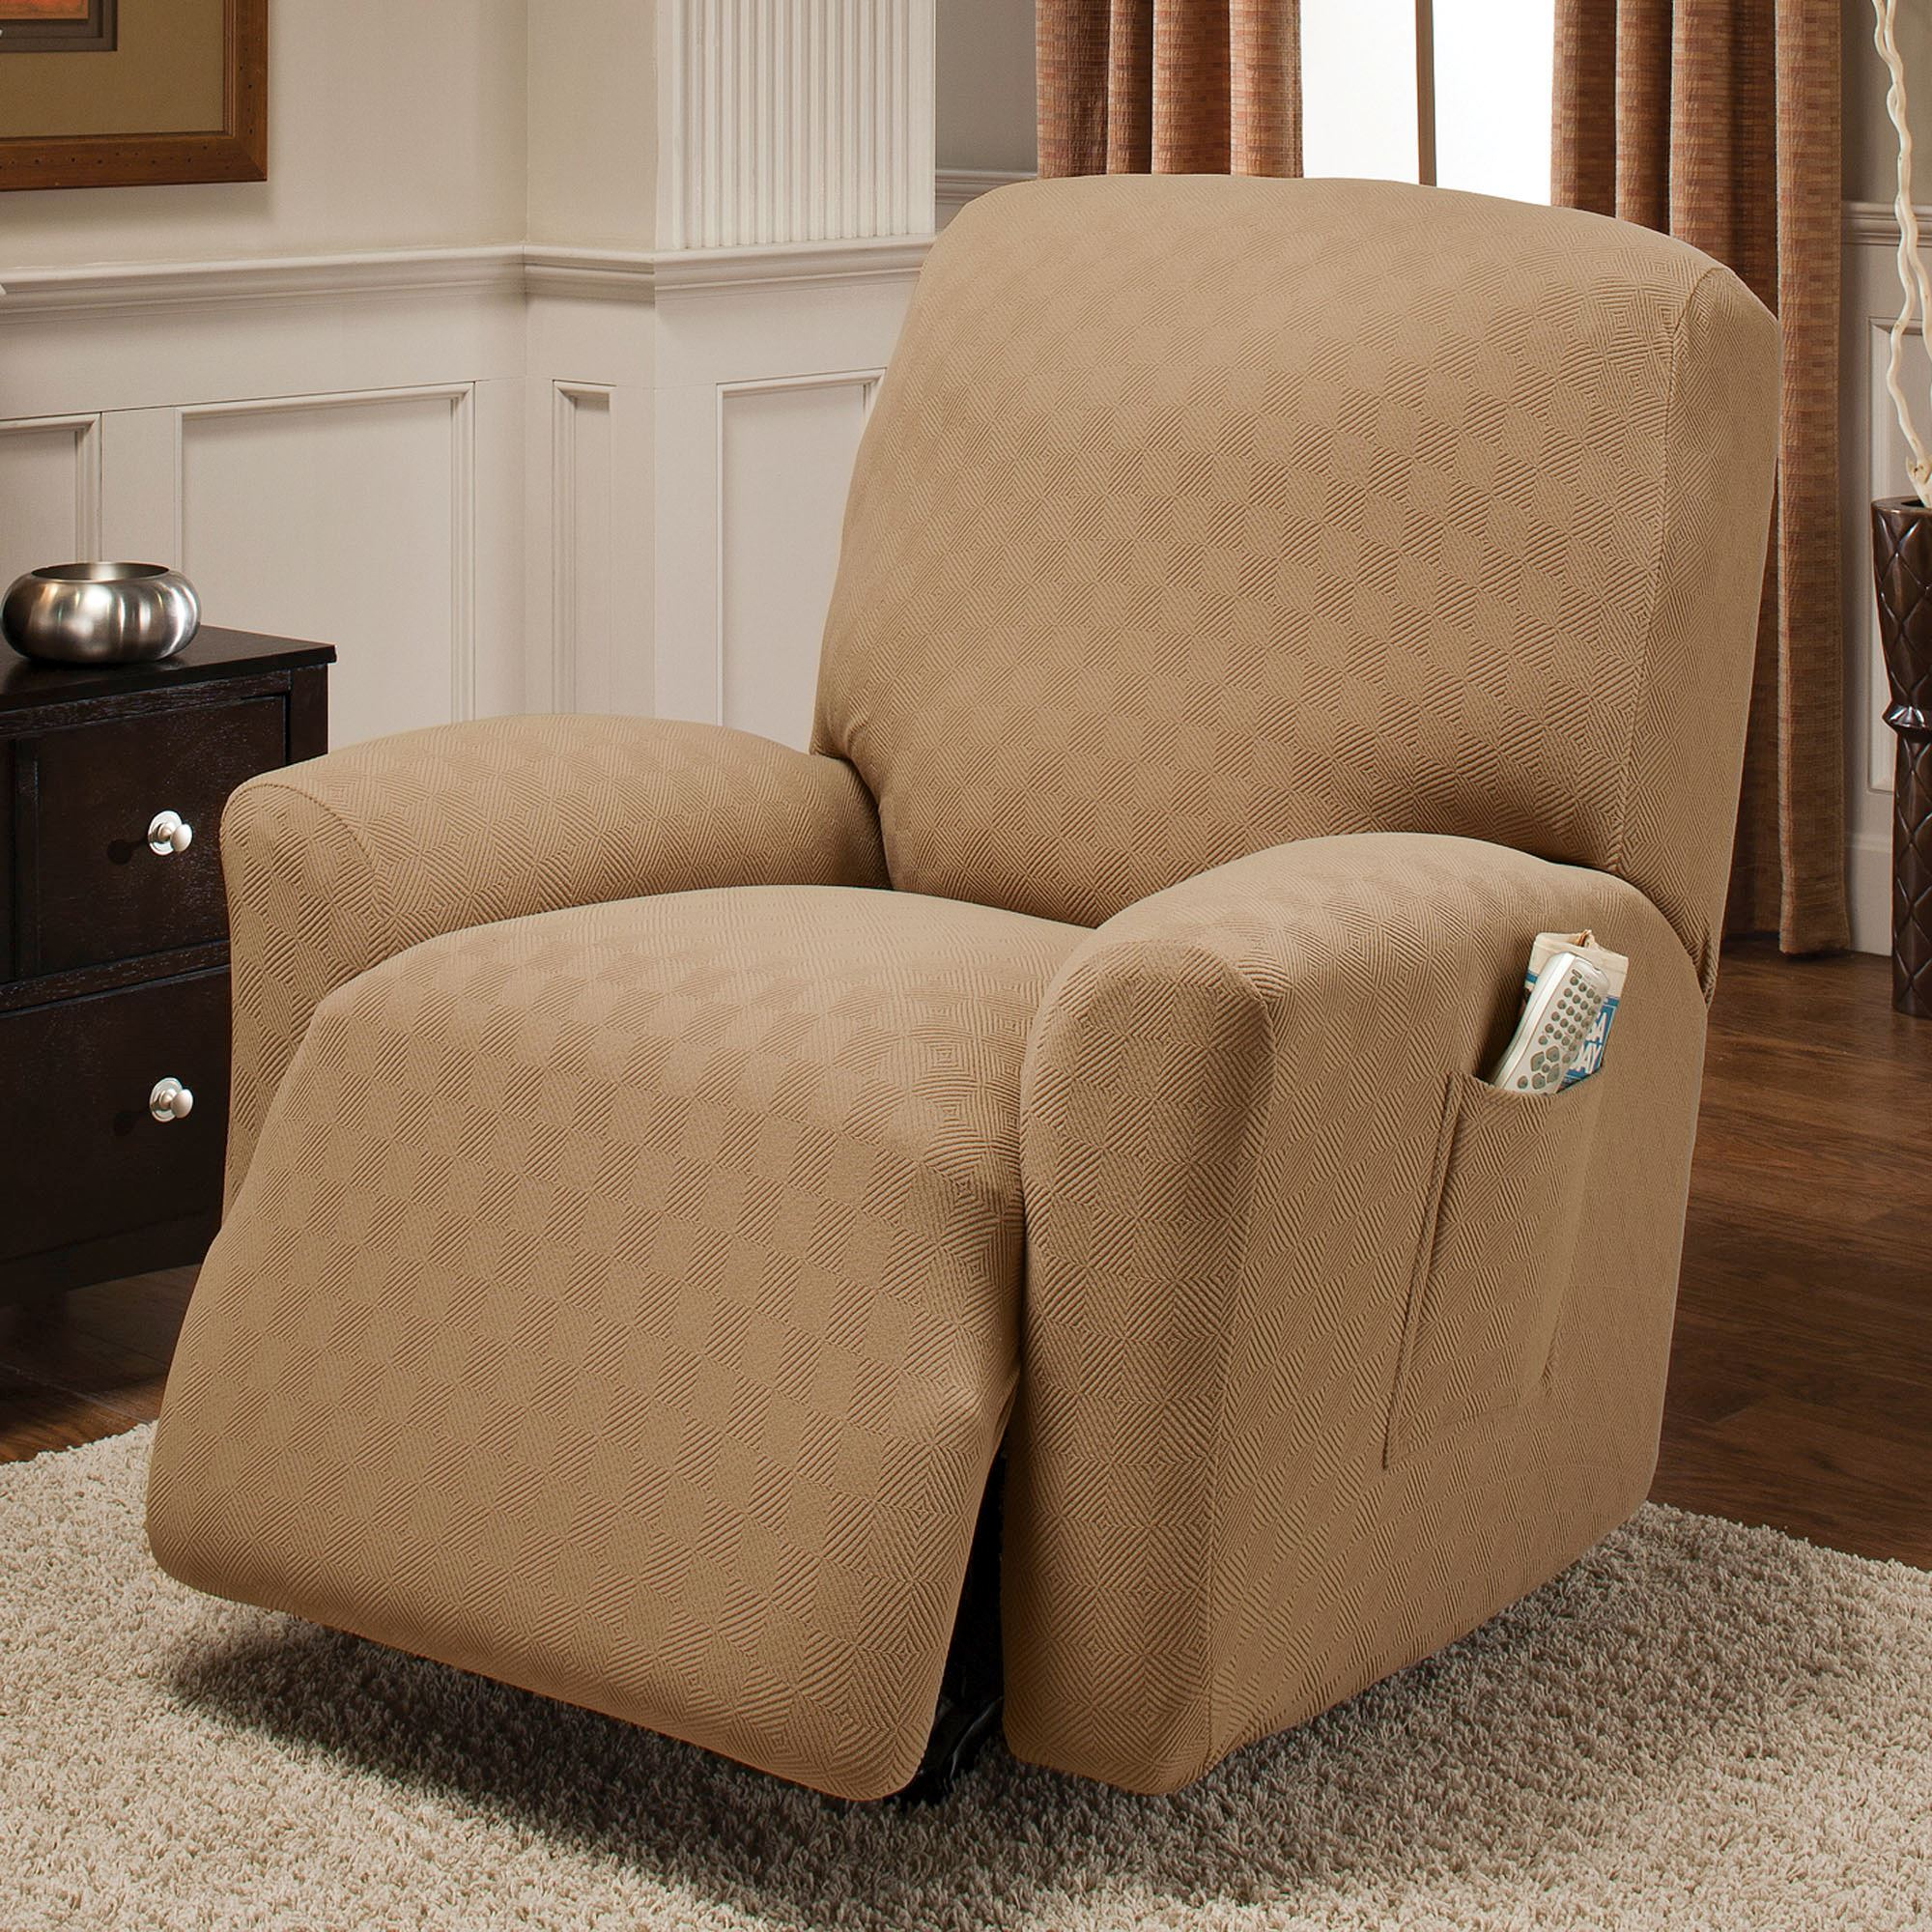 custom slipcovers sure protectors foot astonishing brown cool for recliners stretch simple idea color slipcover design recliner